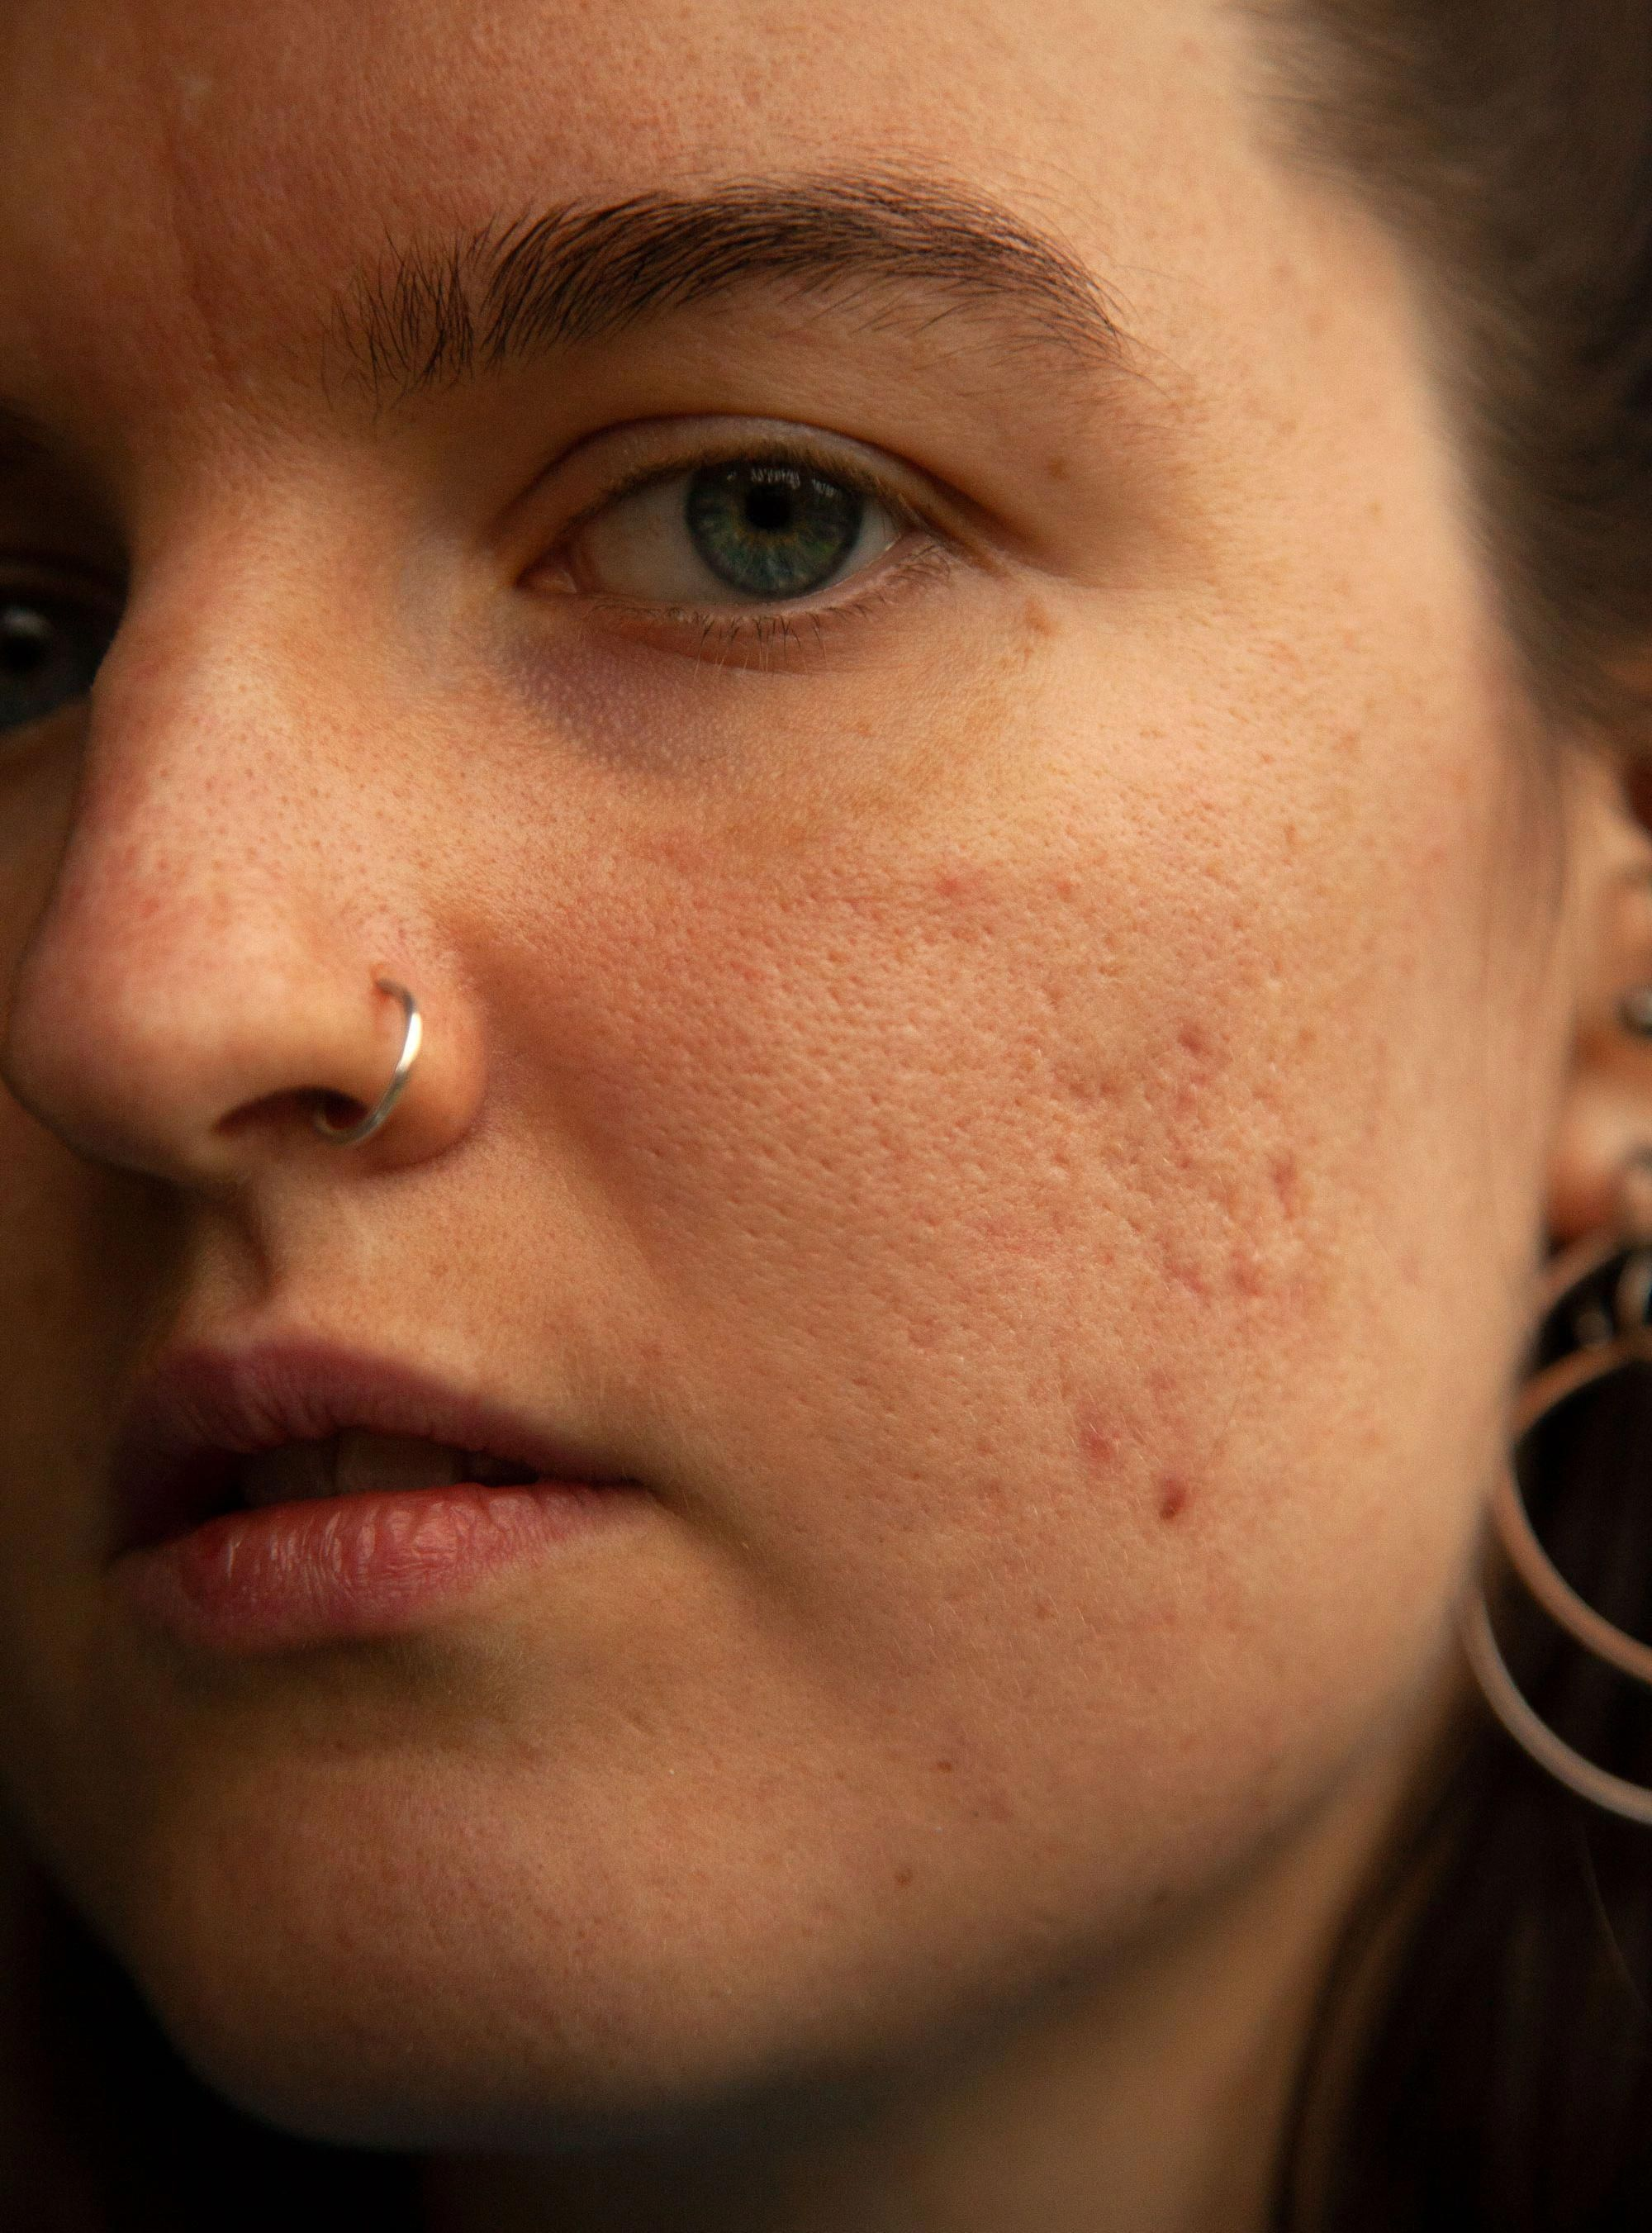 How to get rid of hormonal acne according to top